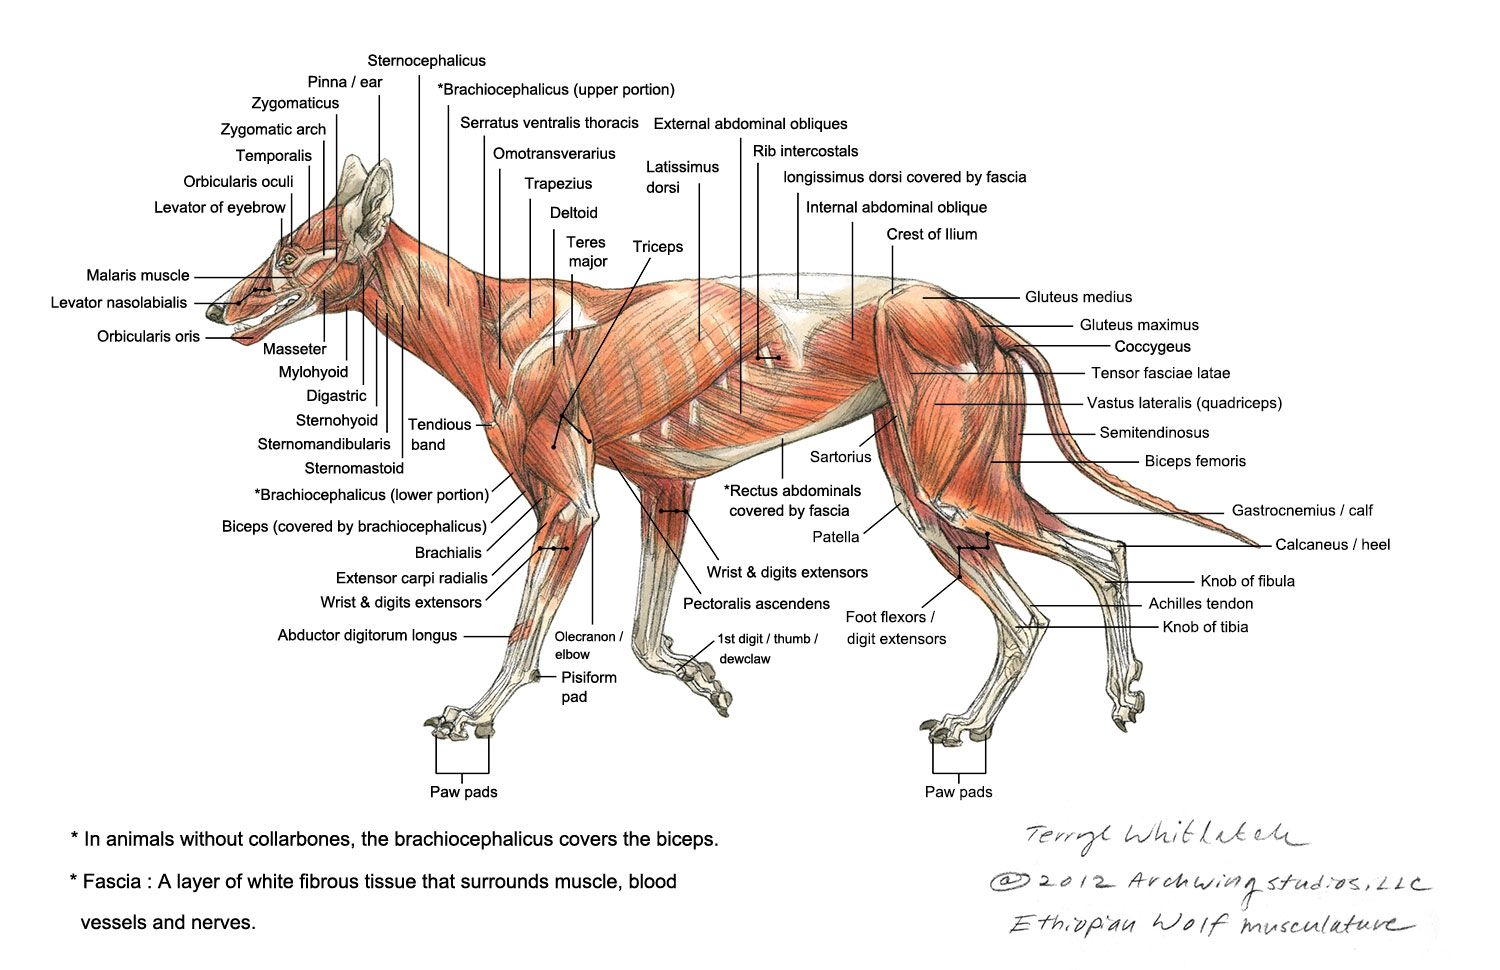 hight resolution of wolf muscle anatomy dog muscular system diagram wolf skeleton diagram wolf muscle